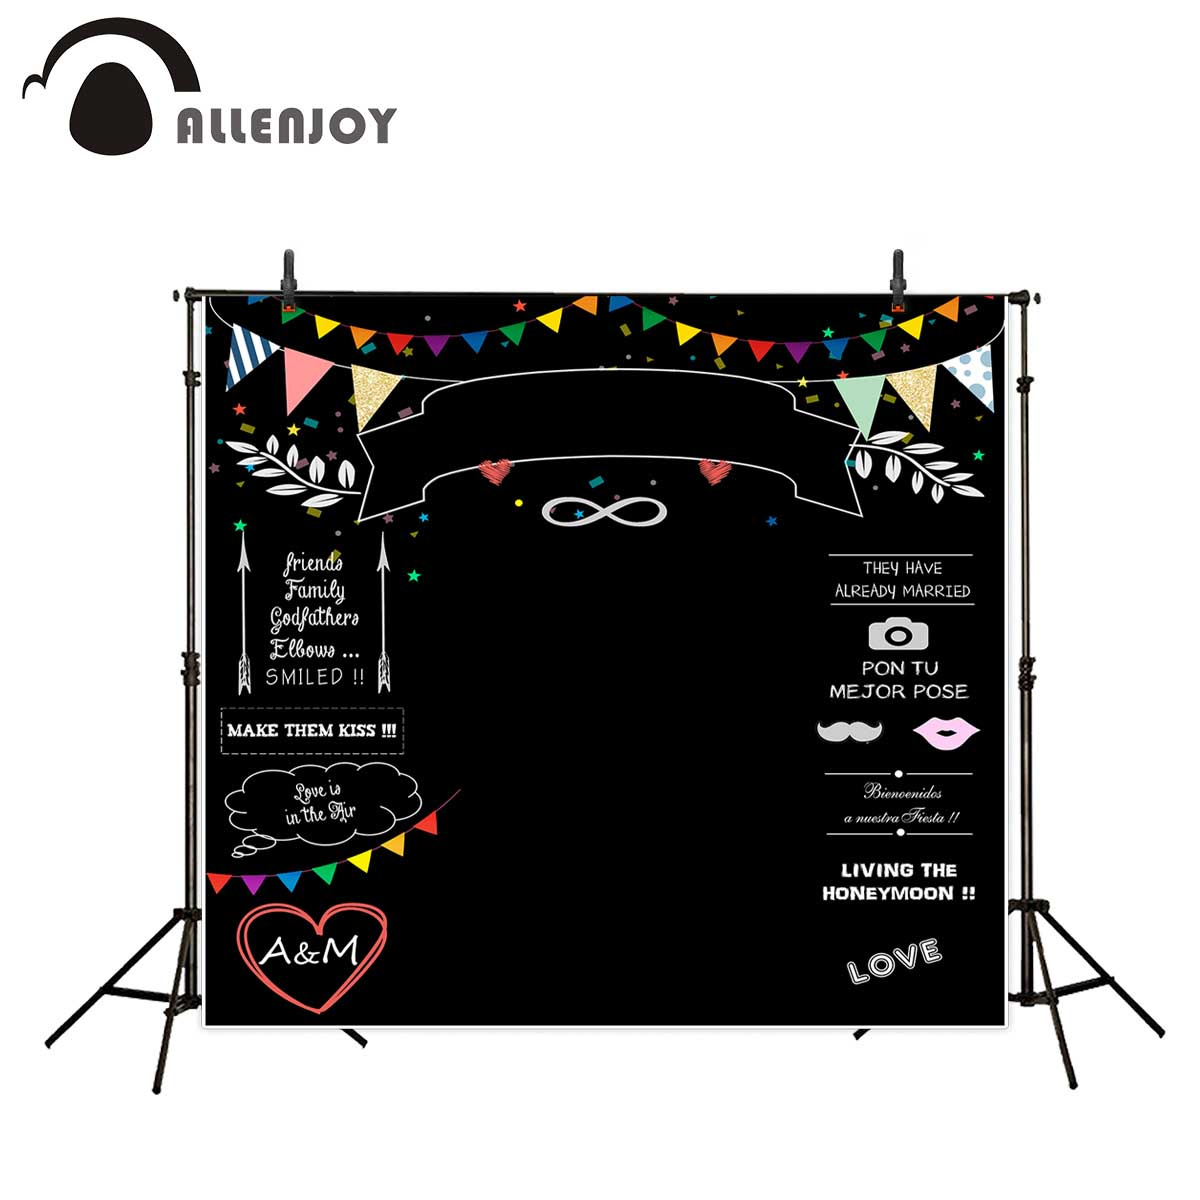 Allenjoy photography backdrop Black flag wedding romantic custom background newborn original design photobooth new arrivals 10ft 20ft romantic wedding backdrop f 894 fabric background idea wood floor digital photography backdrop for picture taking